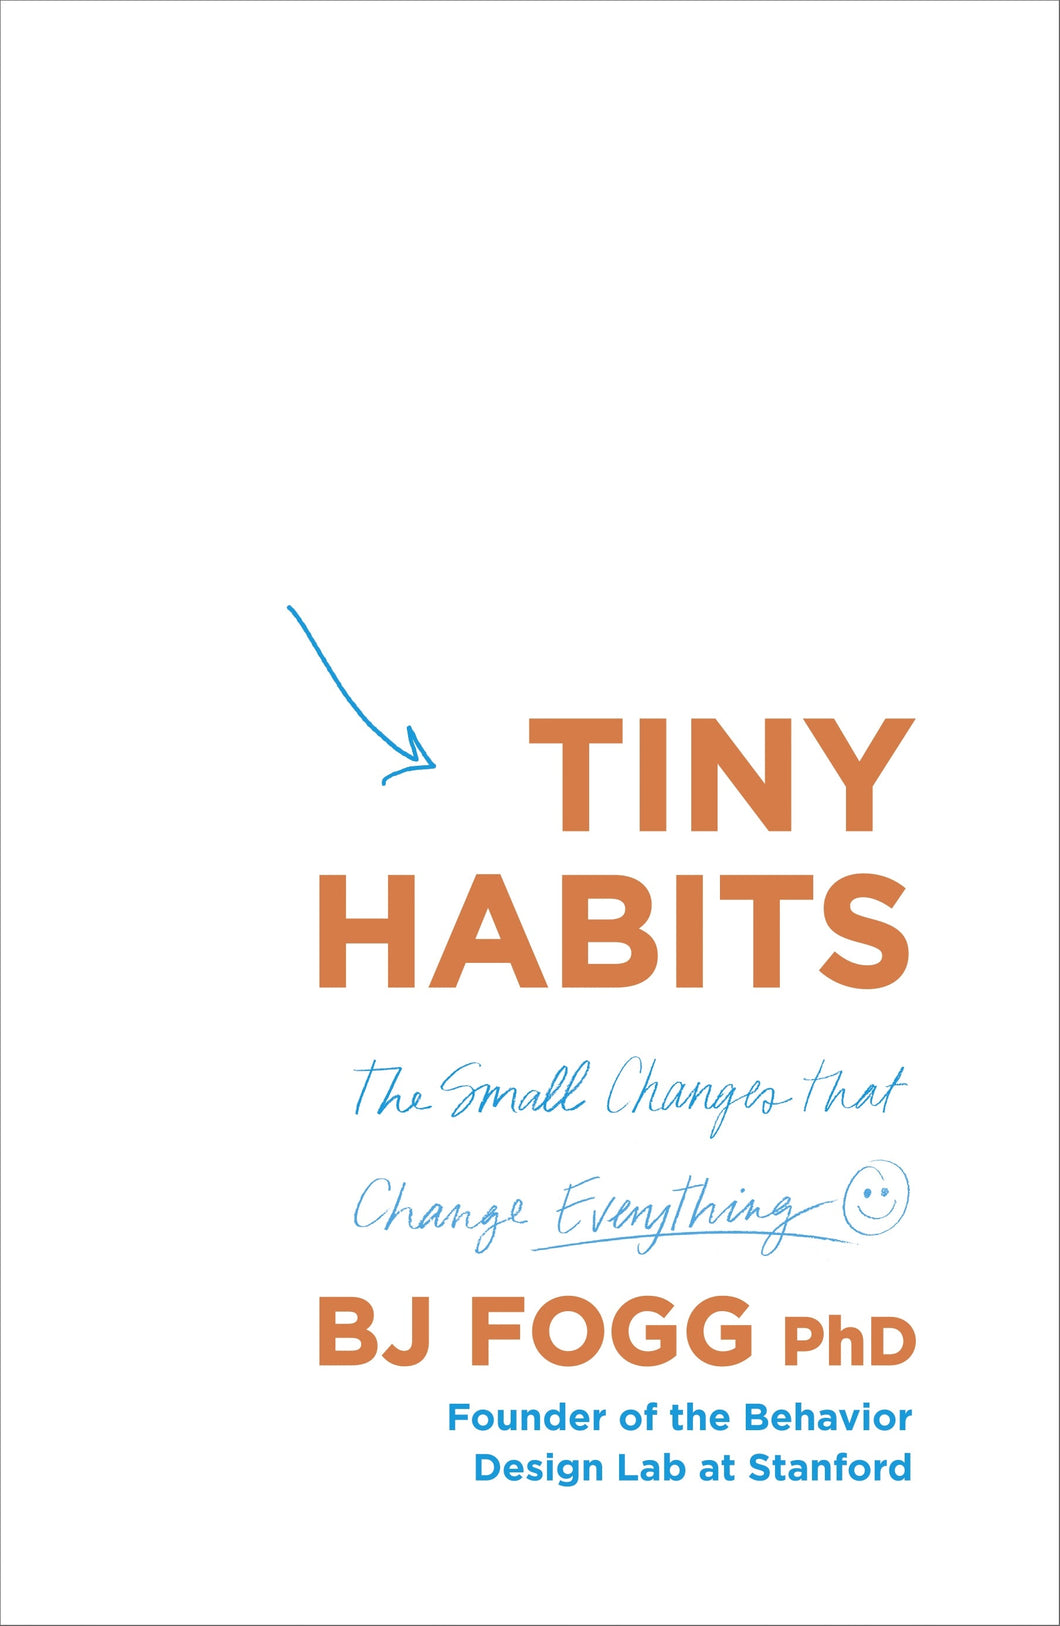 Tiny habits TPB - Fogg BJ